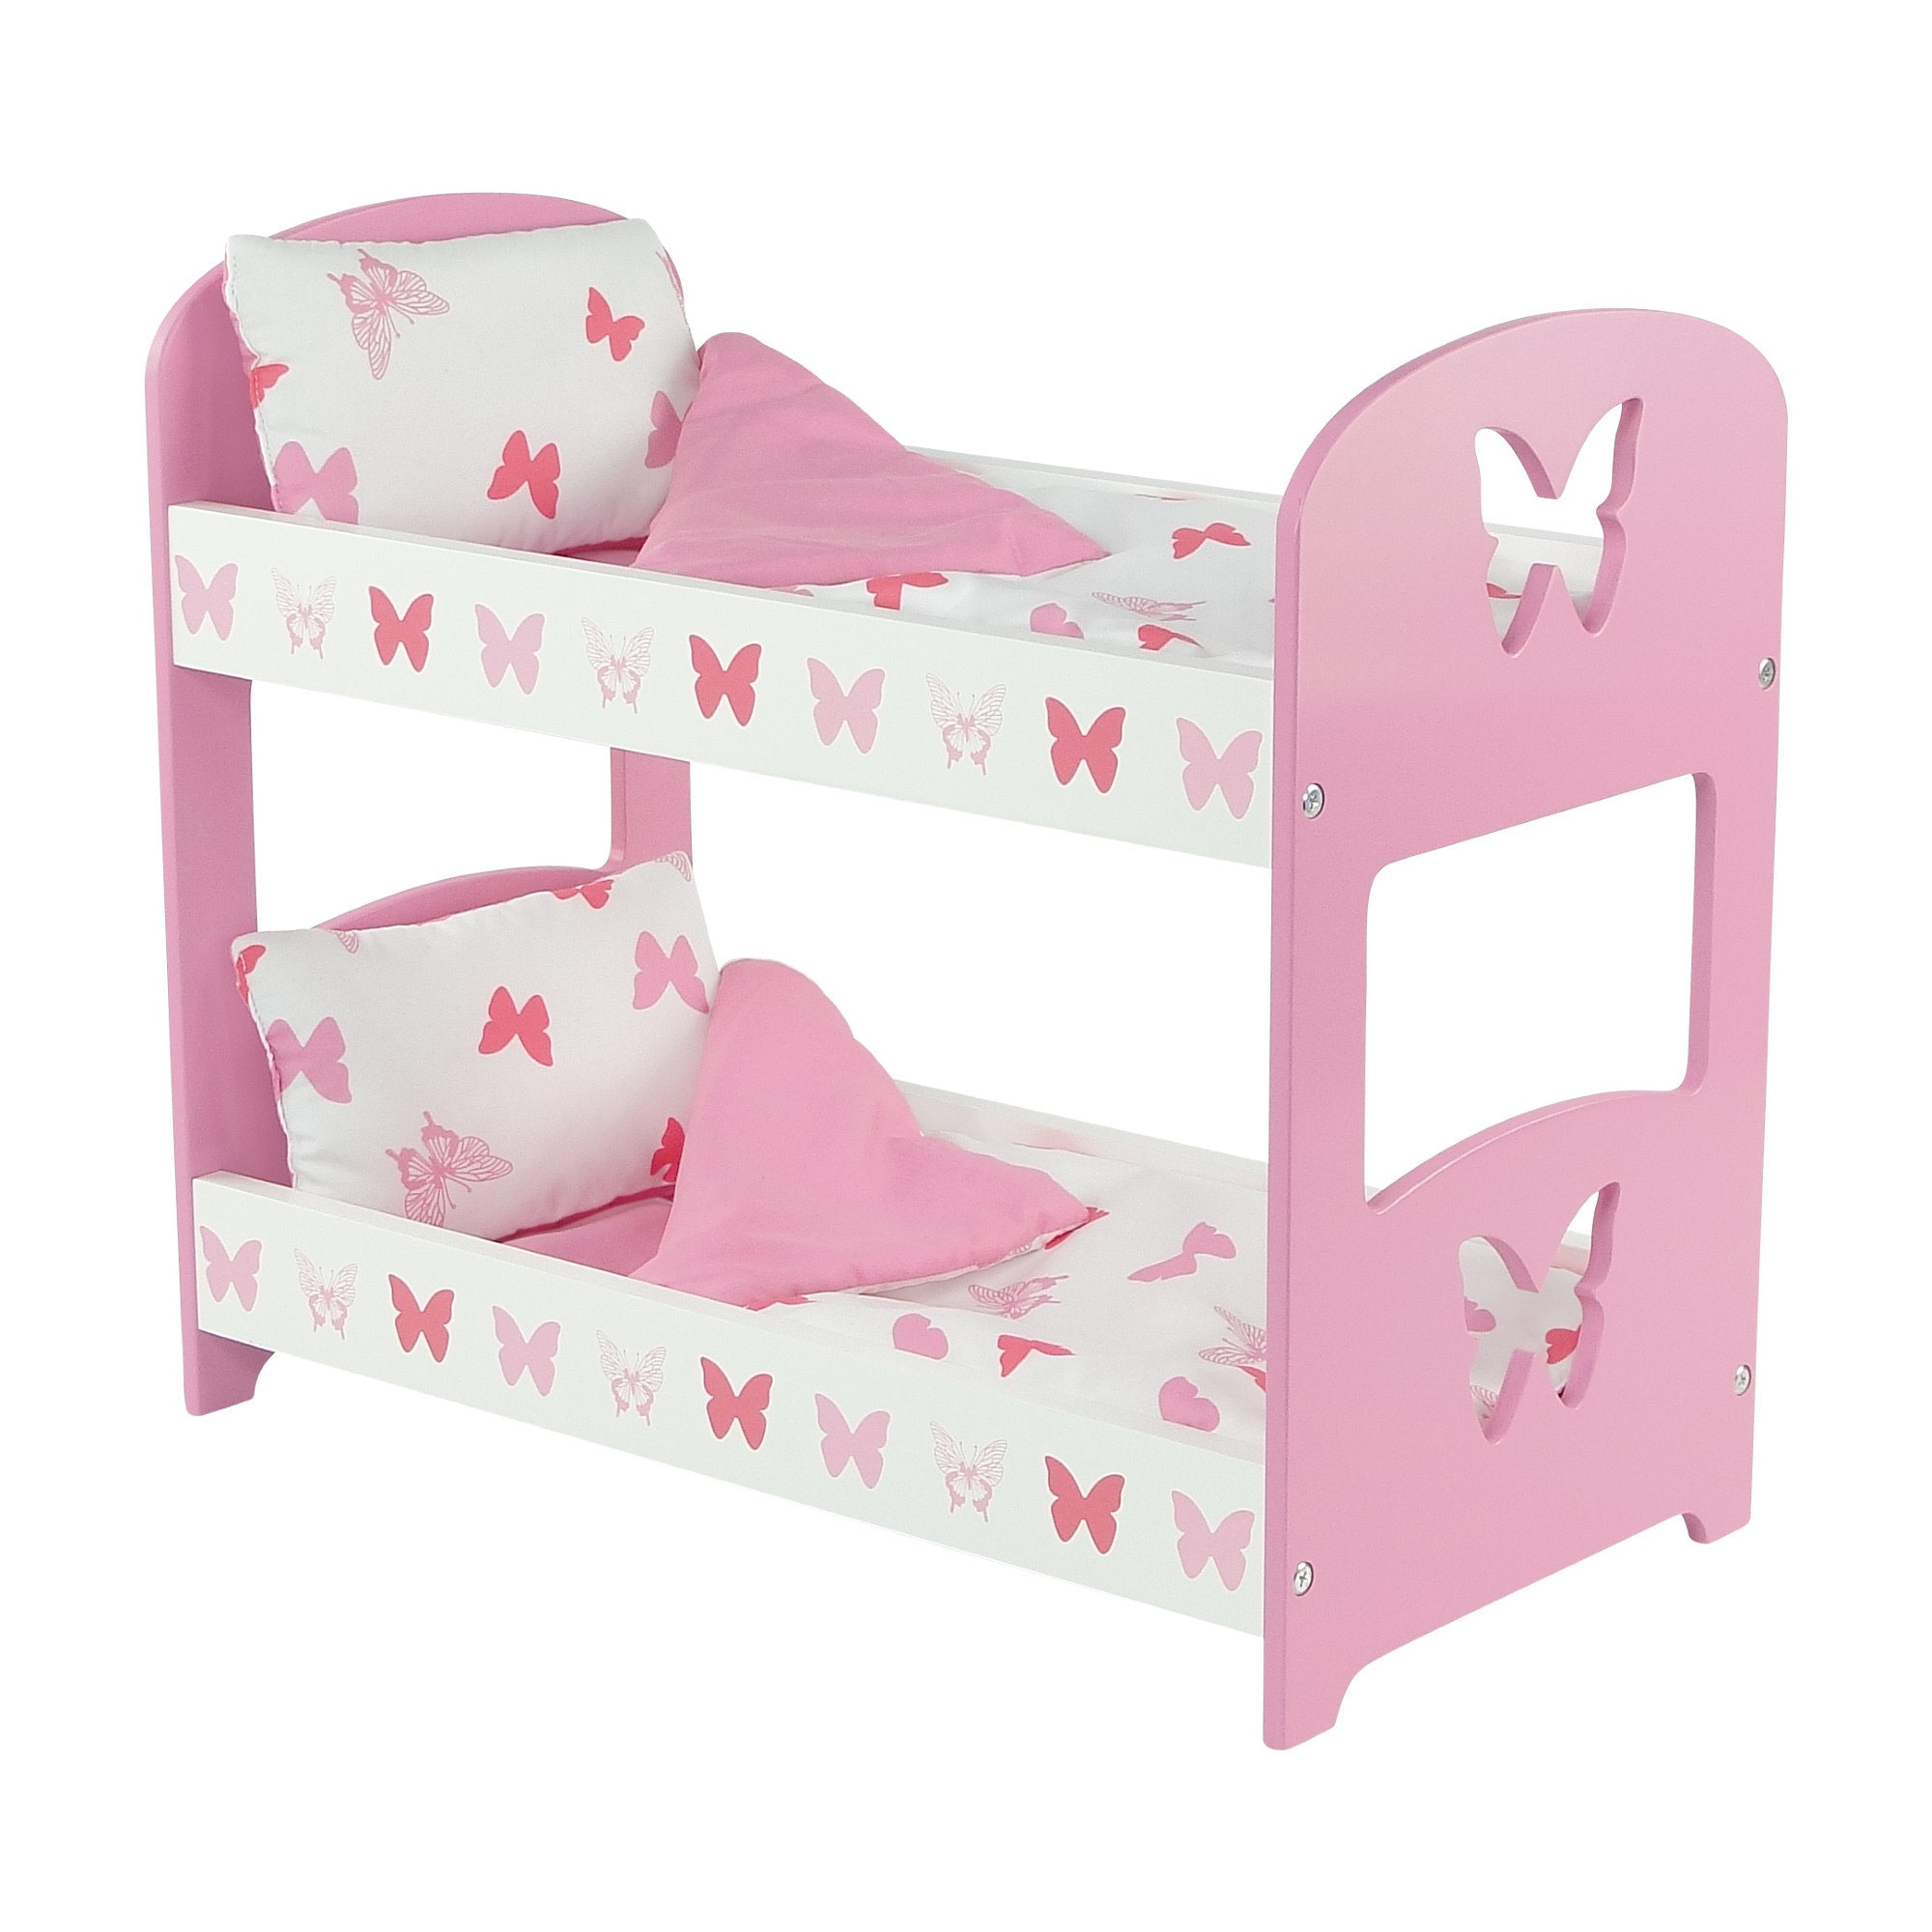 18 Inch Doll Furniture Lovely Pink And White Bunk Bed With